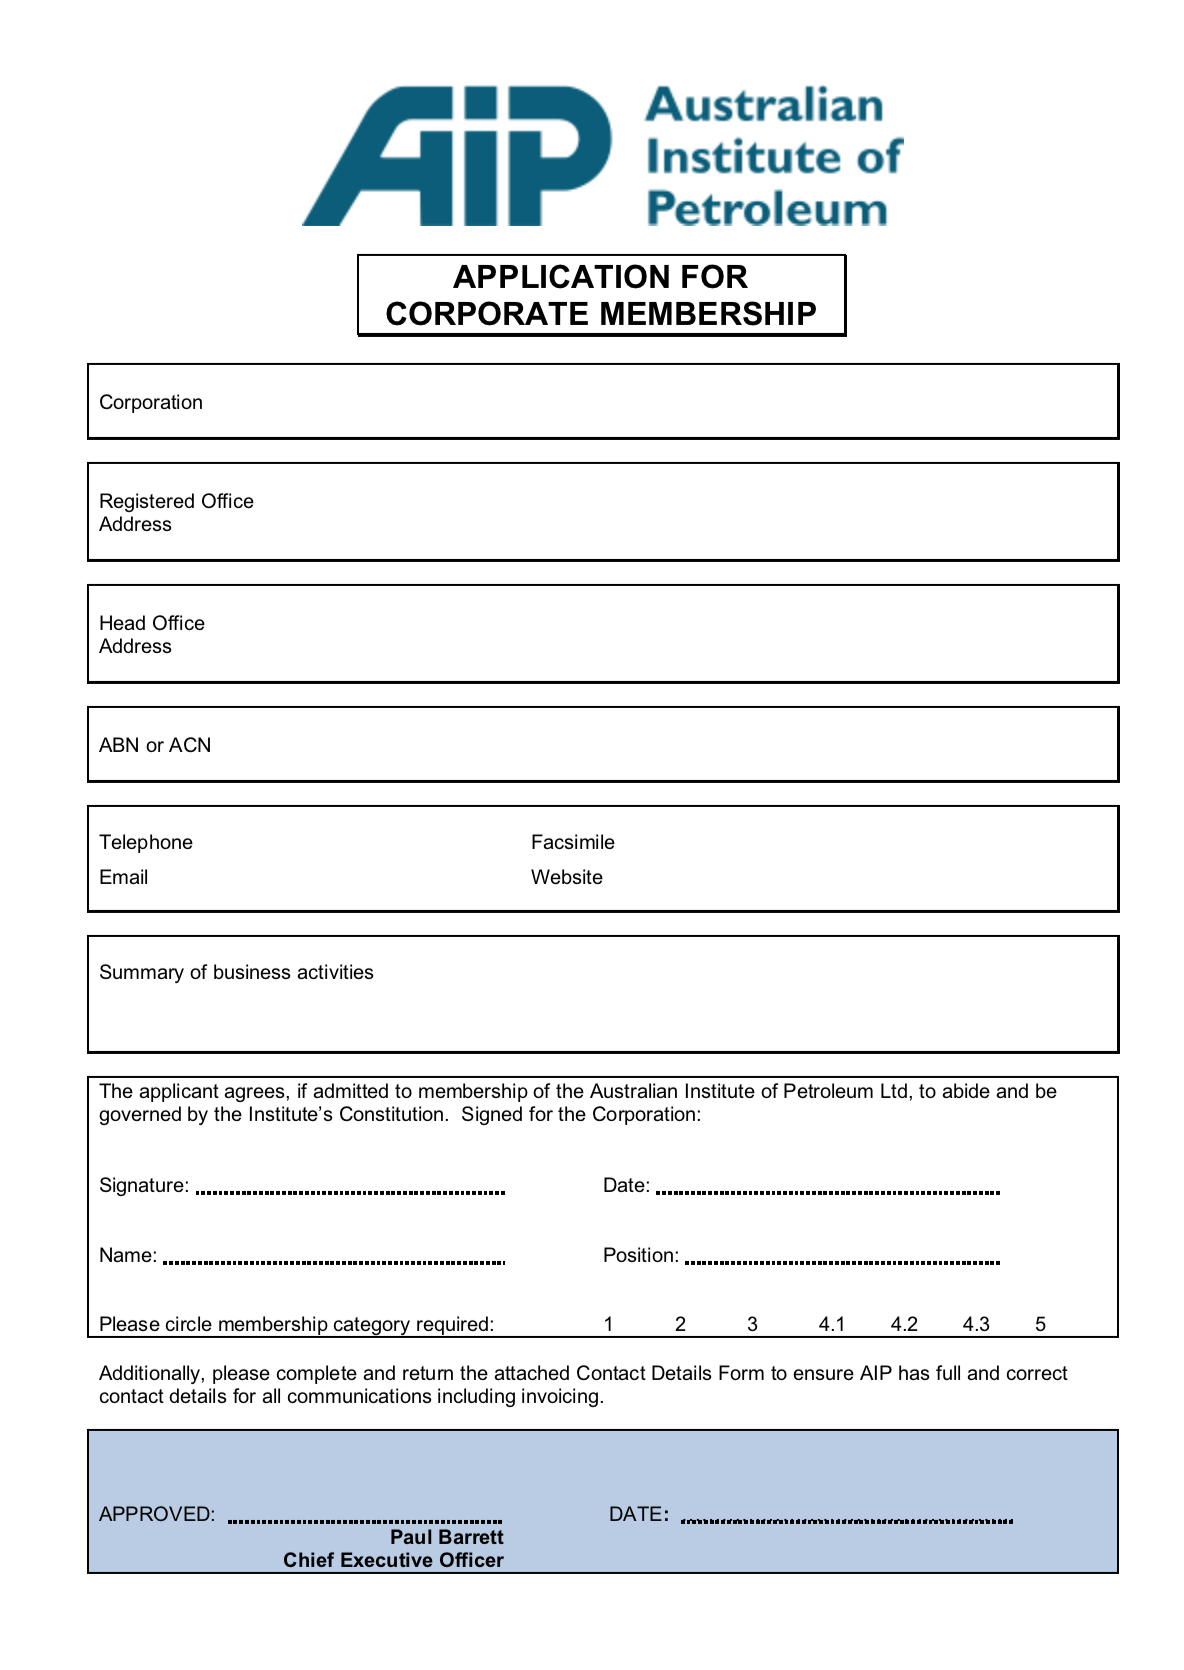 Application for Corporate Membership Form